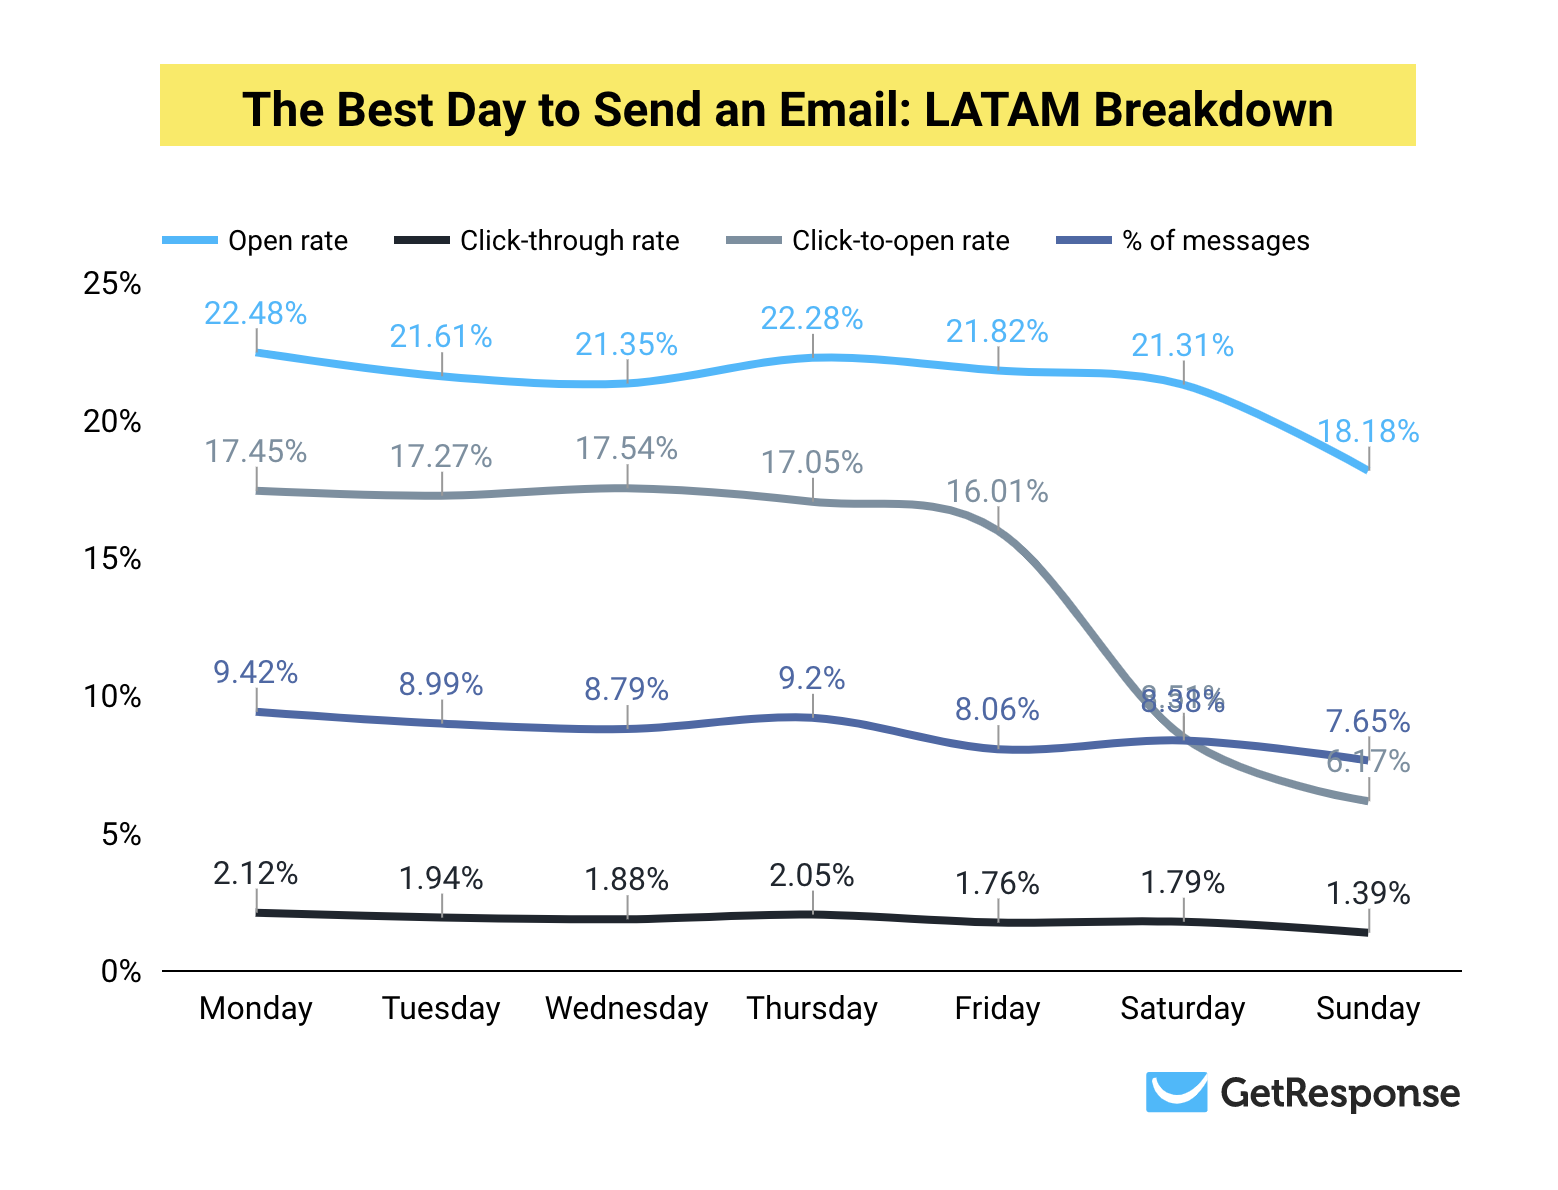 The Best Day to Send an Email: Latin America Results Breakdown.